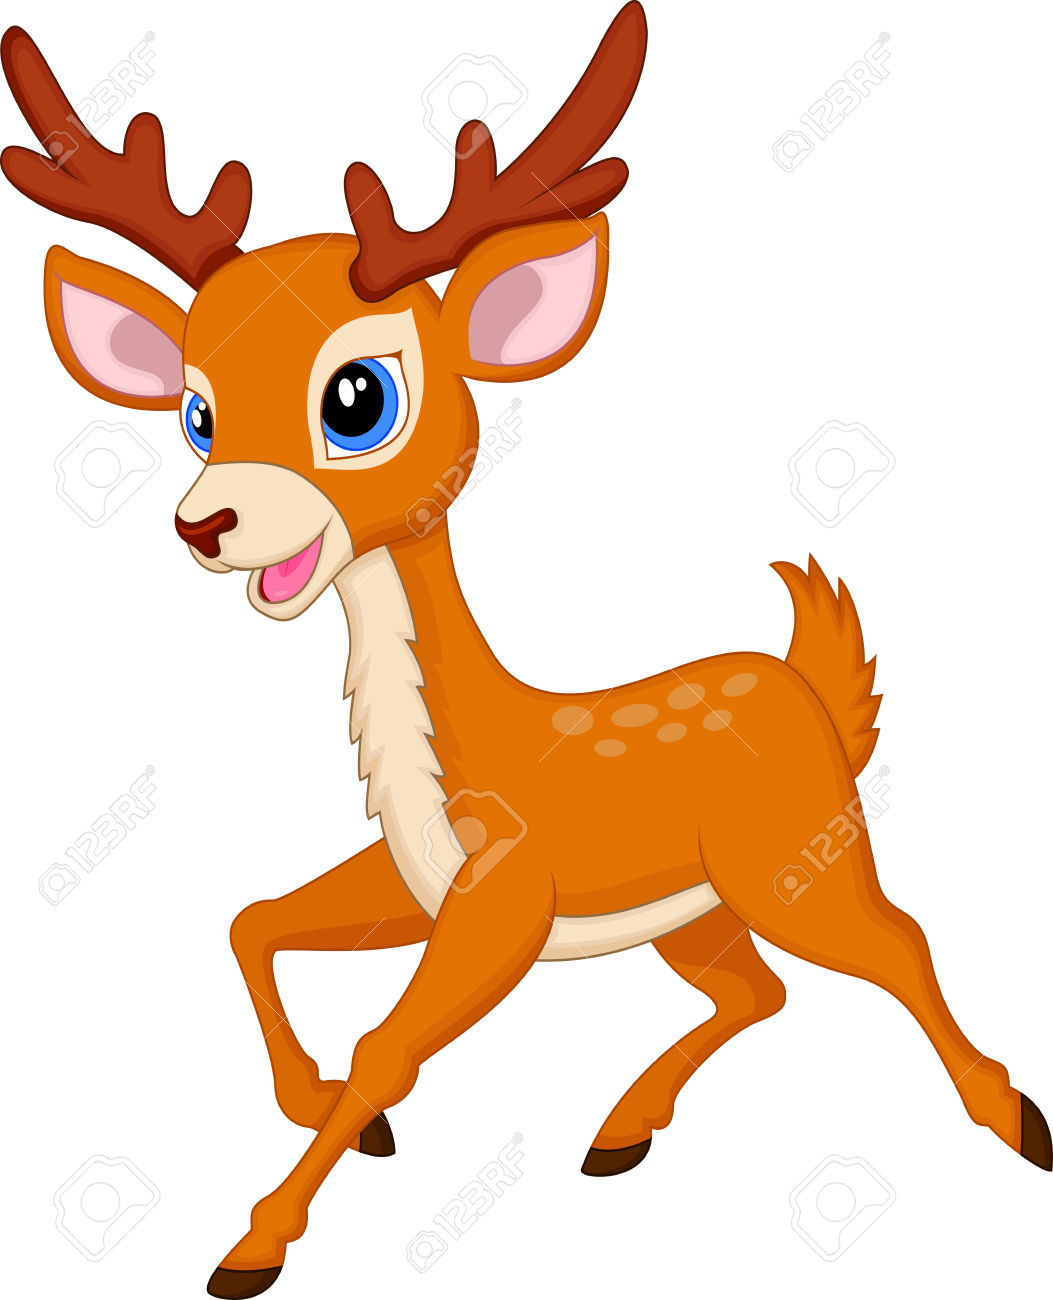 Baby buck head clipart vector transparent library Baby Deer Clipart | Free download best Baby Deer Clipart on ... vector transparent library